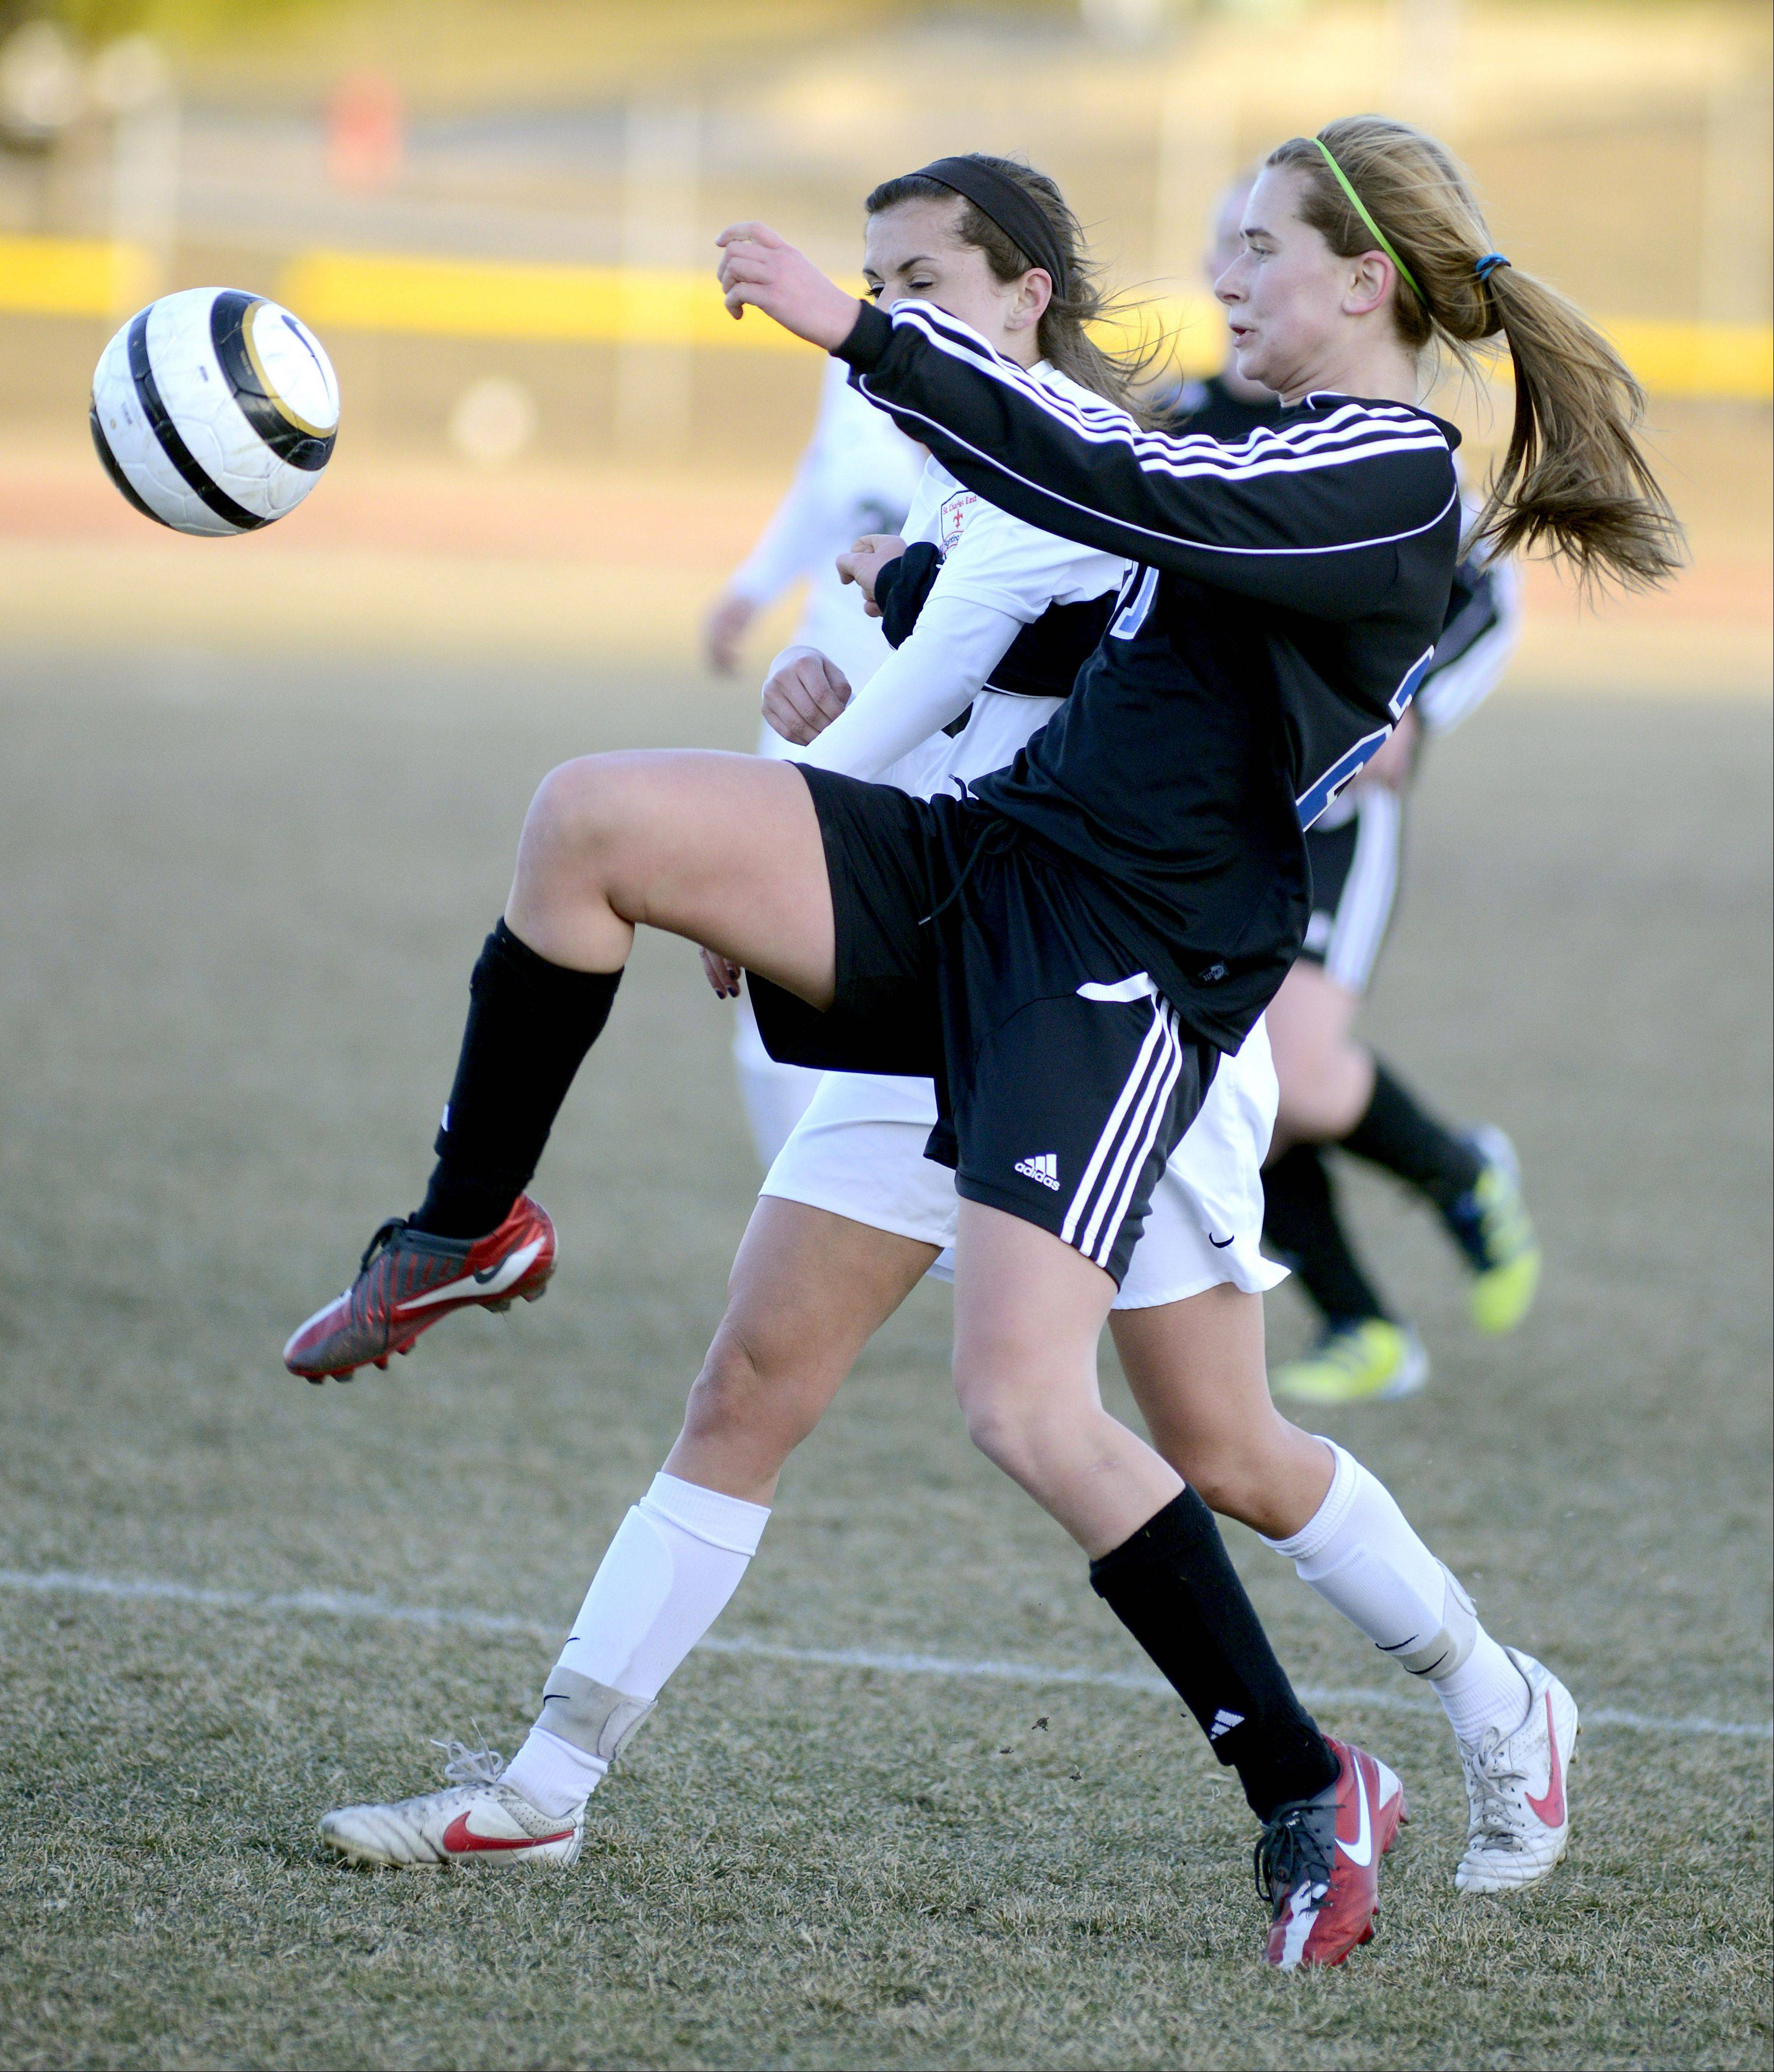 St. Charles East's Morgan Settle and Geneva's Mary Landry battle for the ball in the first half on Tuesday, April 2.